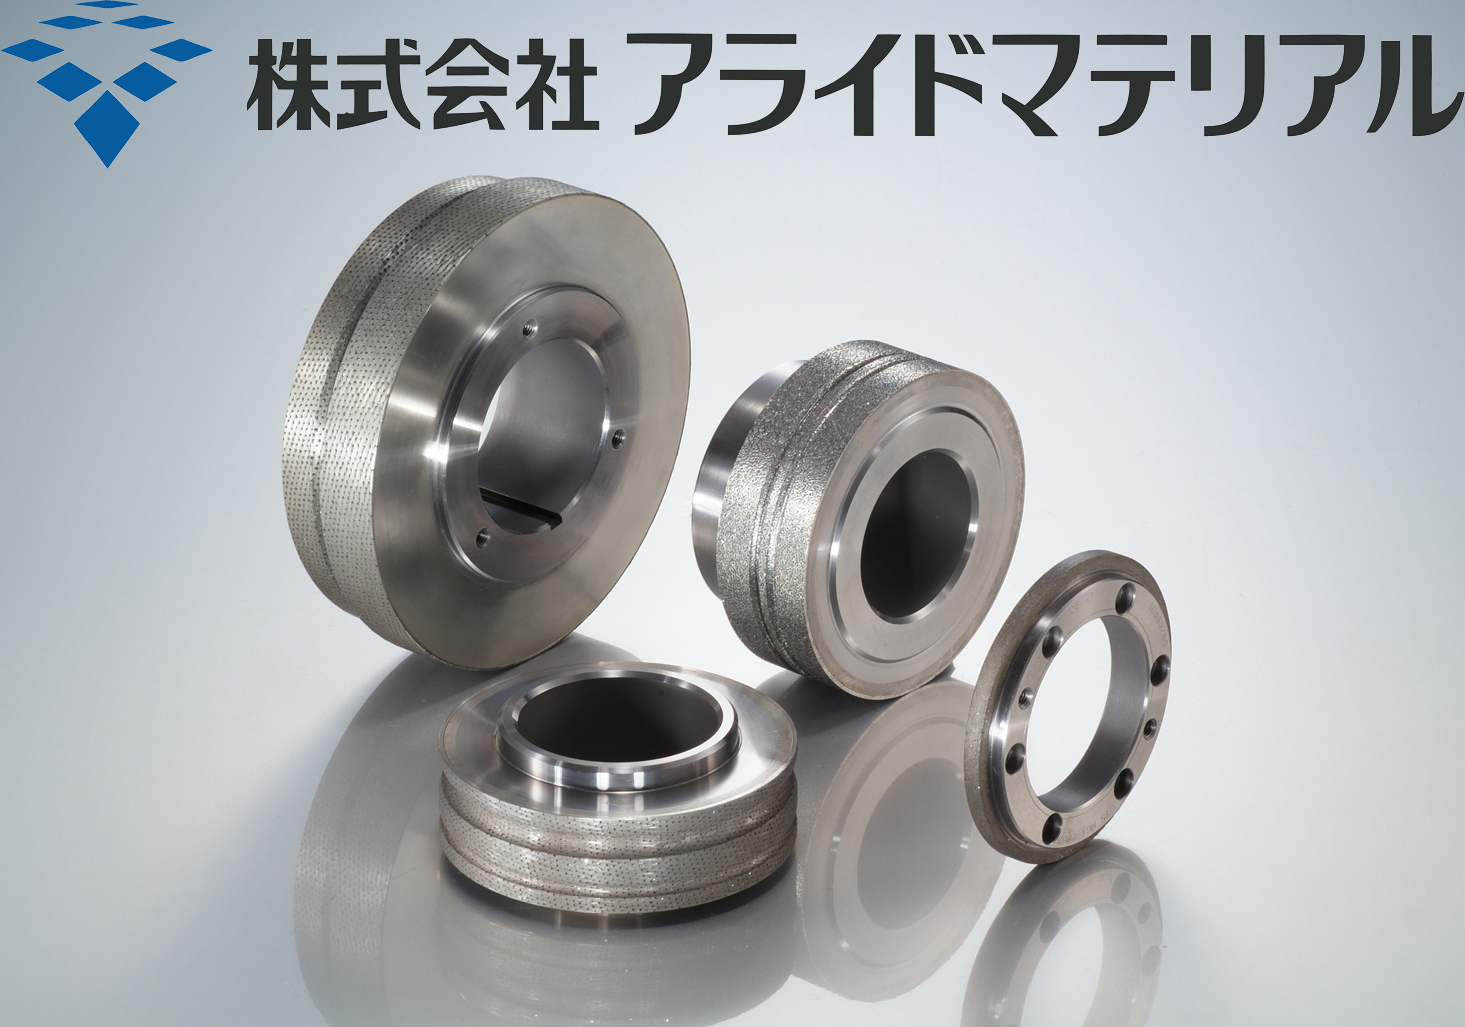 The diamond&CBN products for grinding&cutting tools from A.L.M.T Co.,Ltd